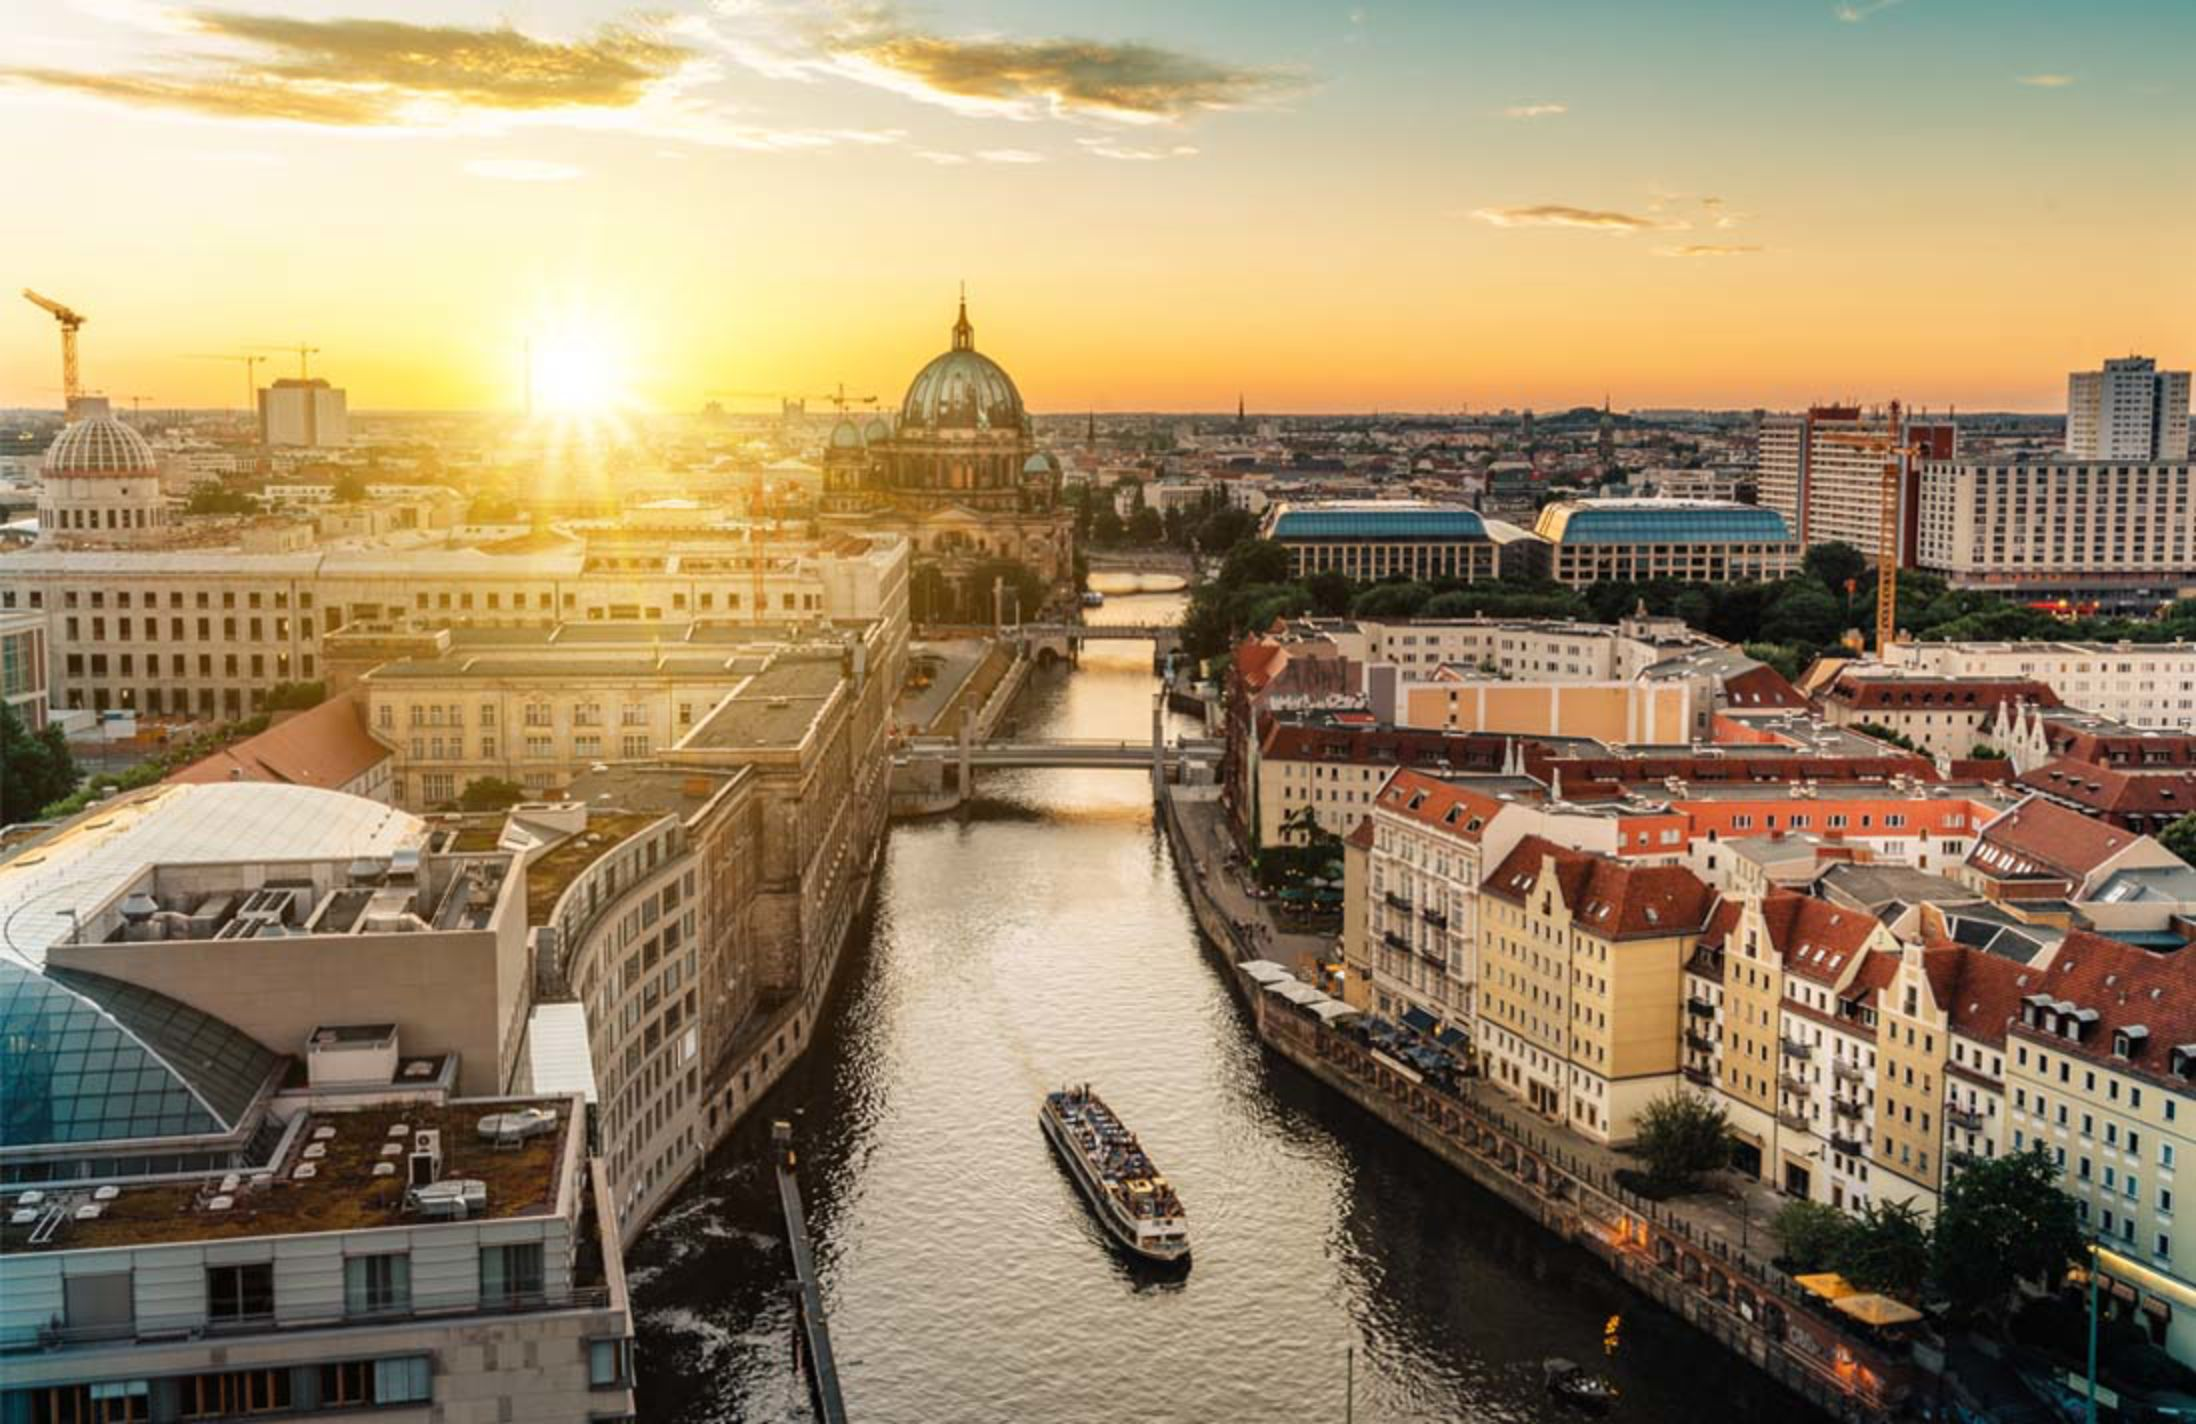 Reasons To Have a Stag Do in Germany | Berlin